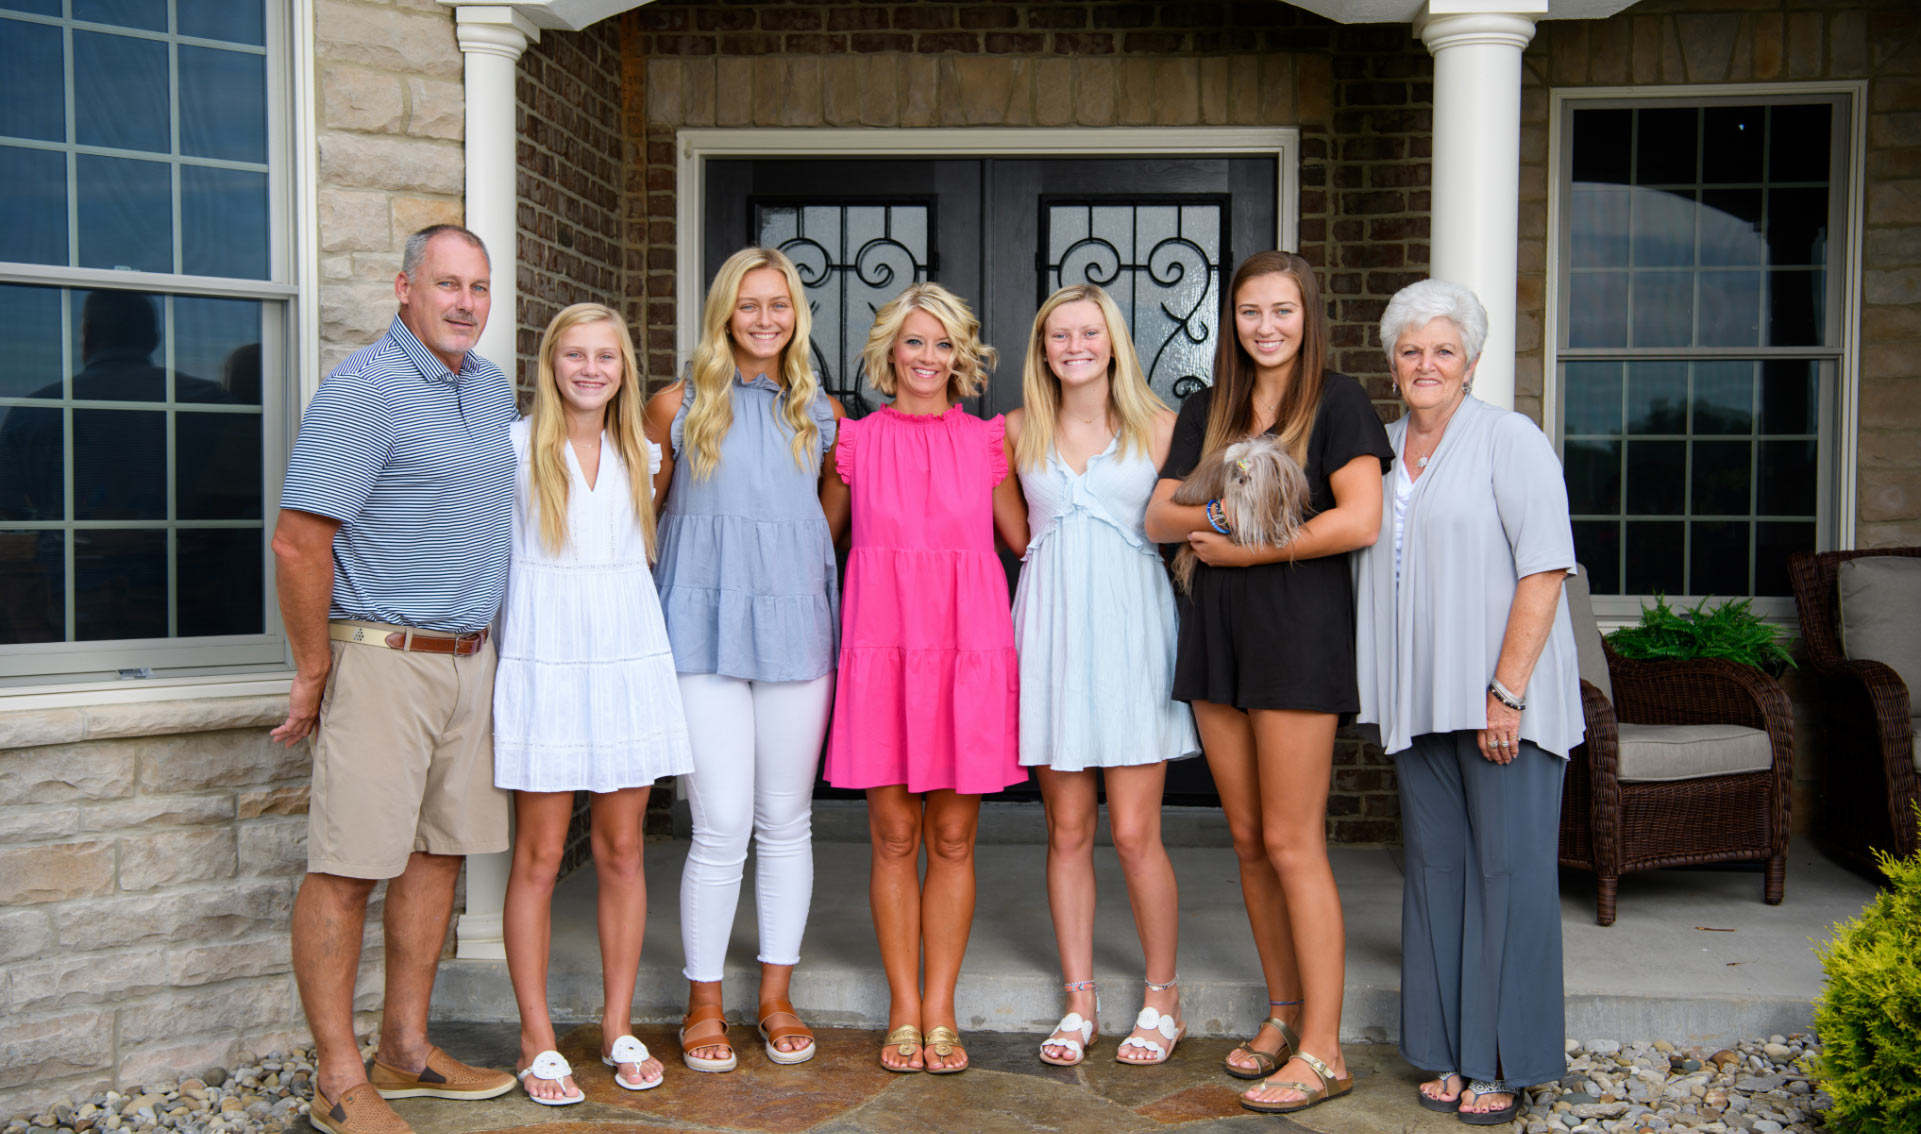 Angela and her family, including her four daughters, her husband, her mother, and their dog, pose for a photo outside their front door.